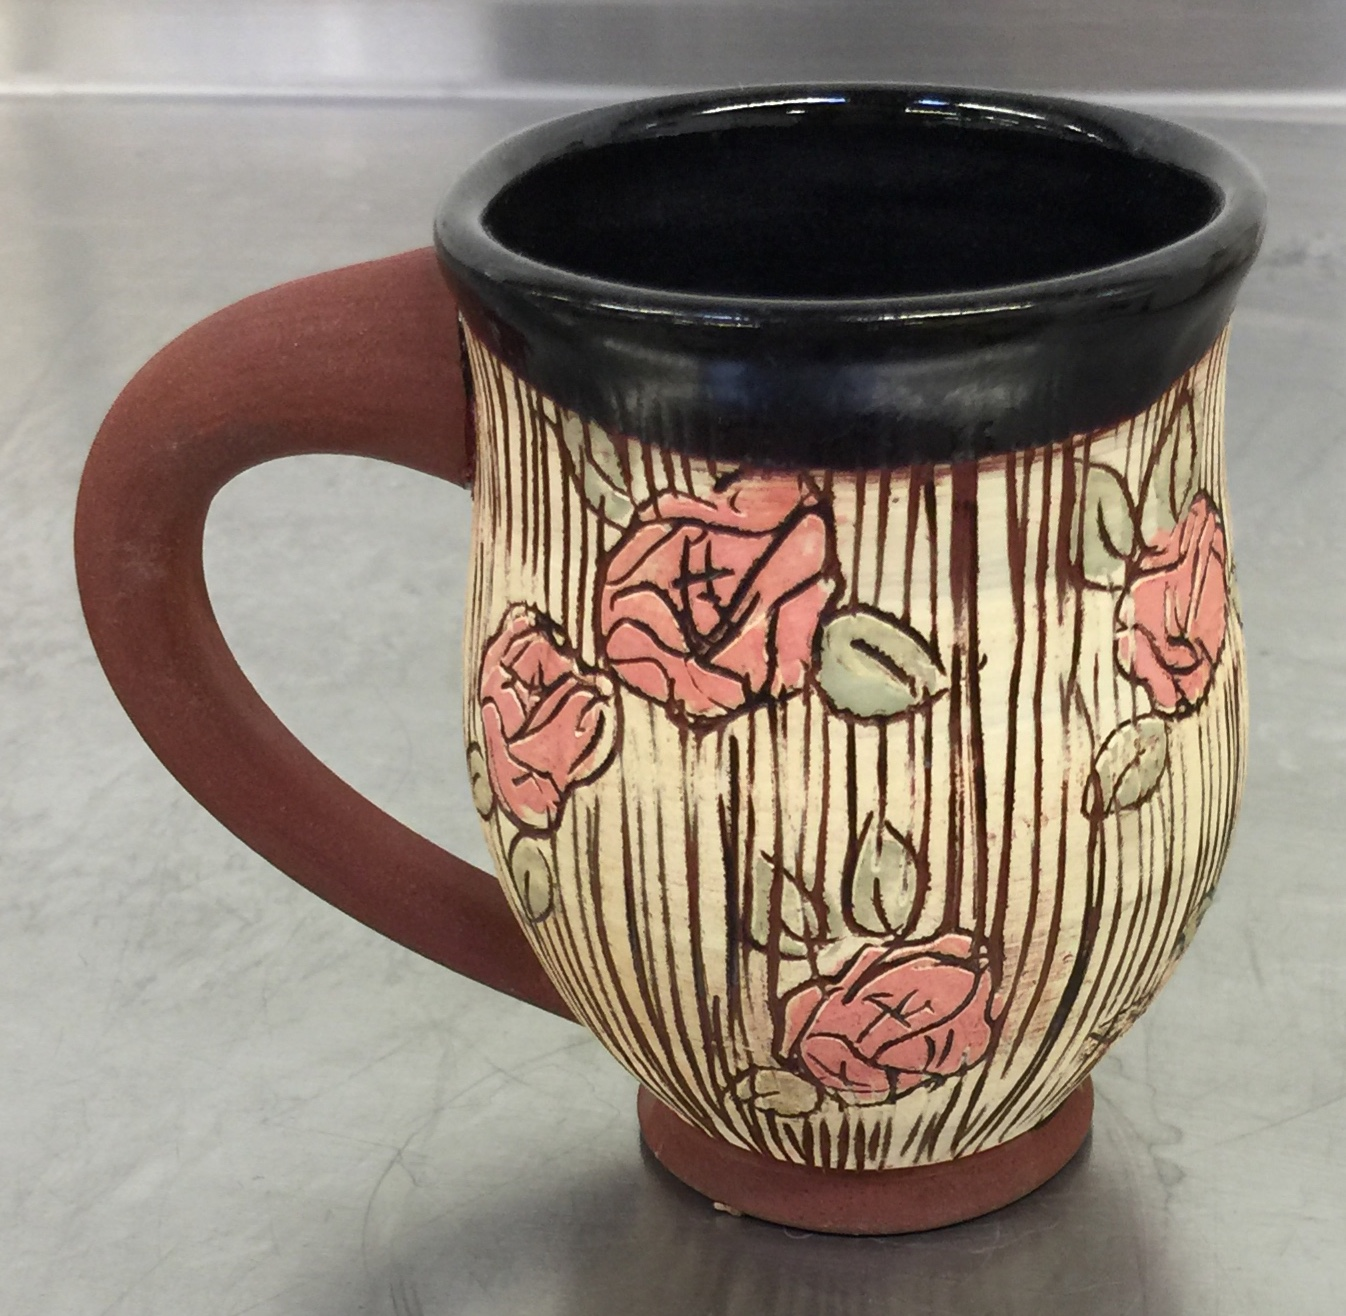 Mug by Giselle Peters